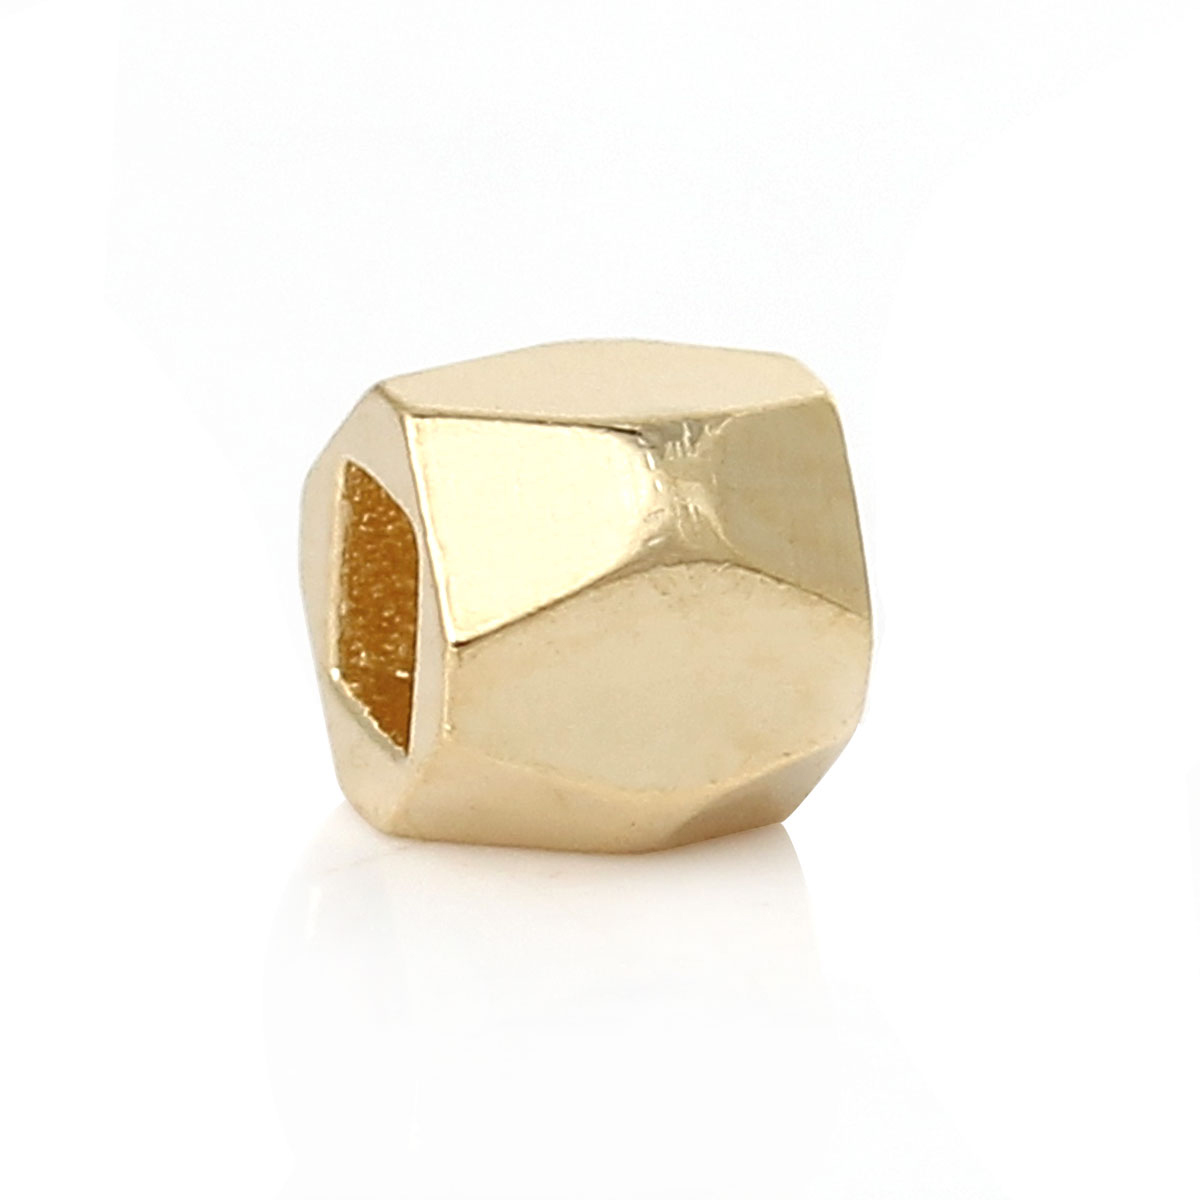 ,hole:approx 1.7mm X 1.7mm,5 Pieces Beautiful In Colour x 3.4mm Doreenbeads Copper Spacer Beads Cube Gold Color Faceted About 3.4mm 1/8 1/8